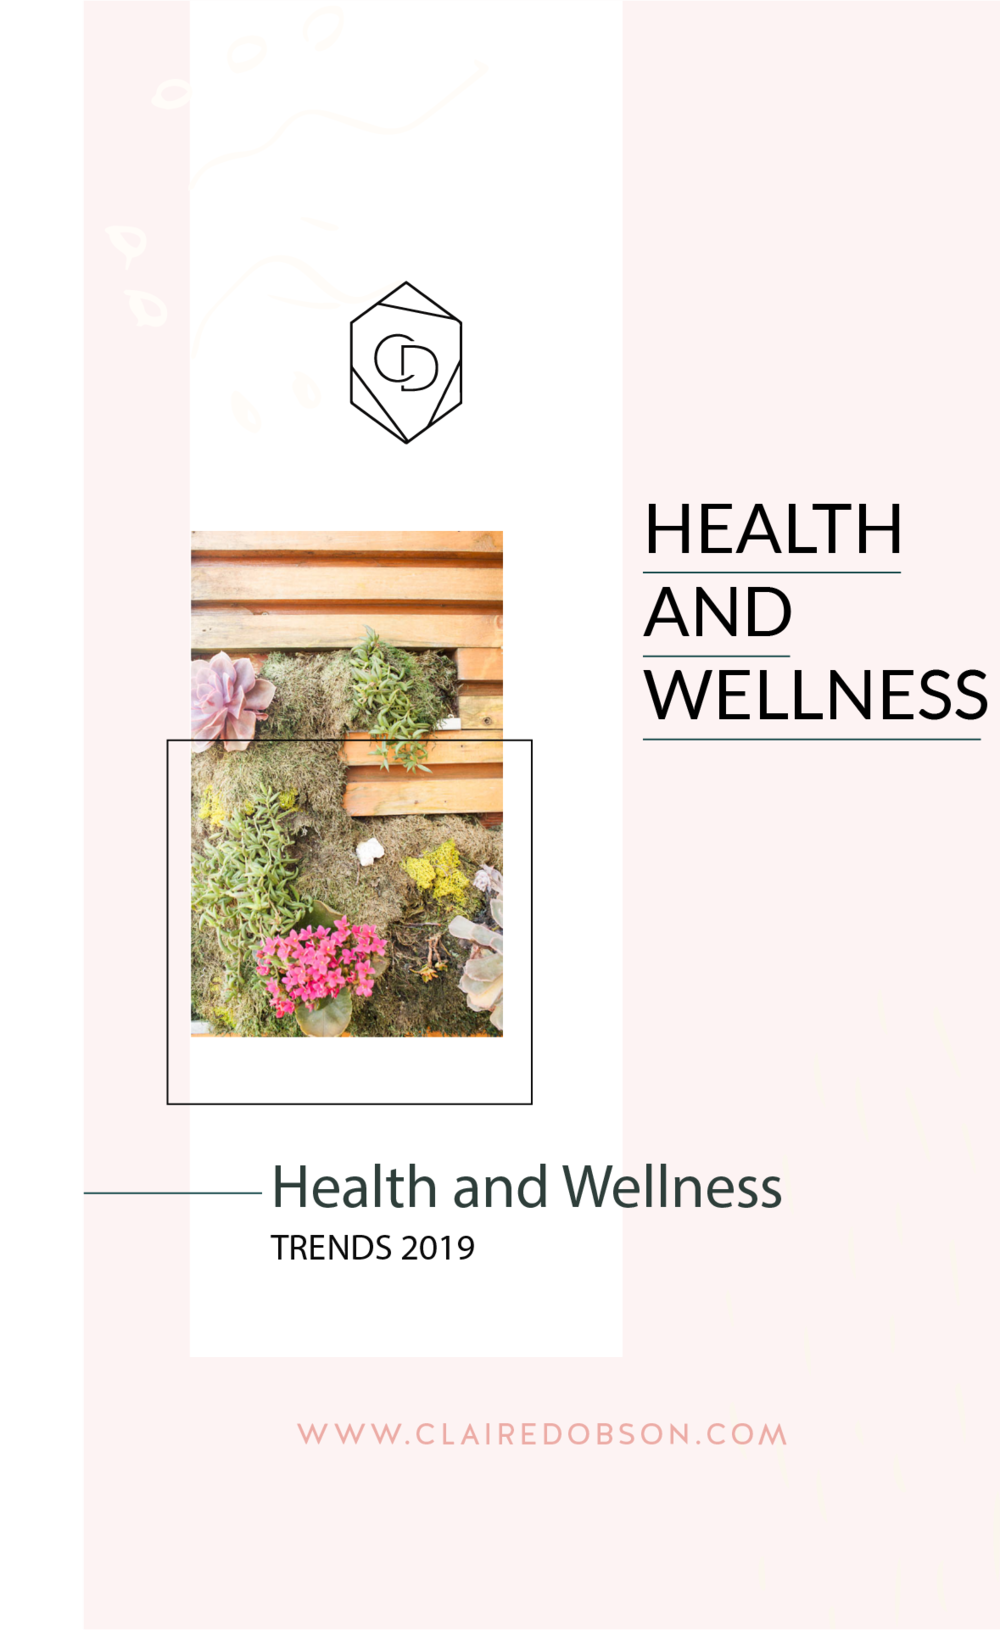 Goodbye burnout, hello self-care! Is improving your physical & mental health a priority this year? I've got 9 health & wellness trends you'll want to pay attention to! #healthtips #wellness #healthyhabits